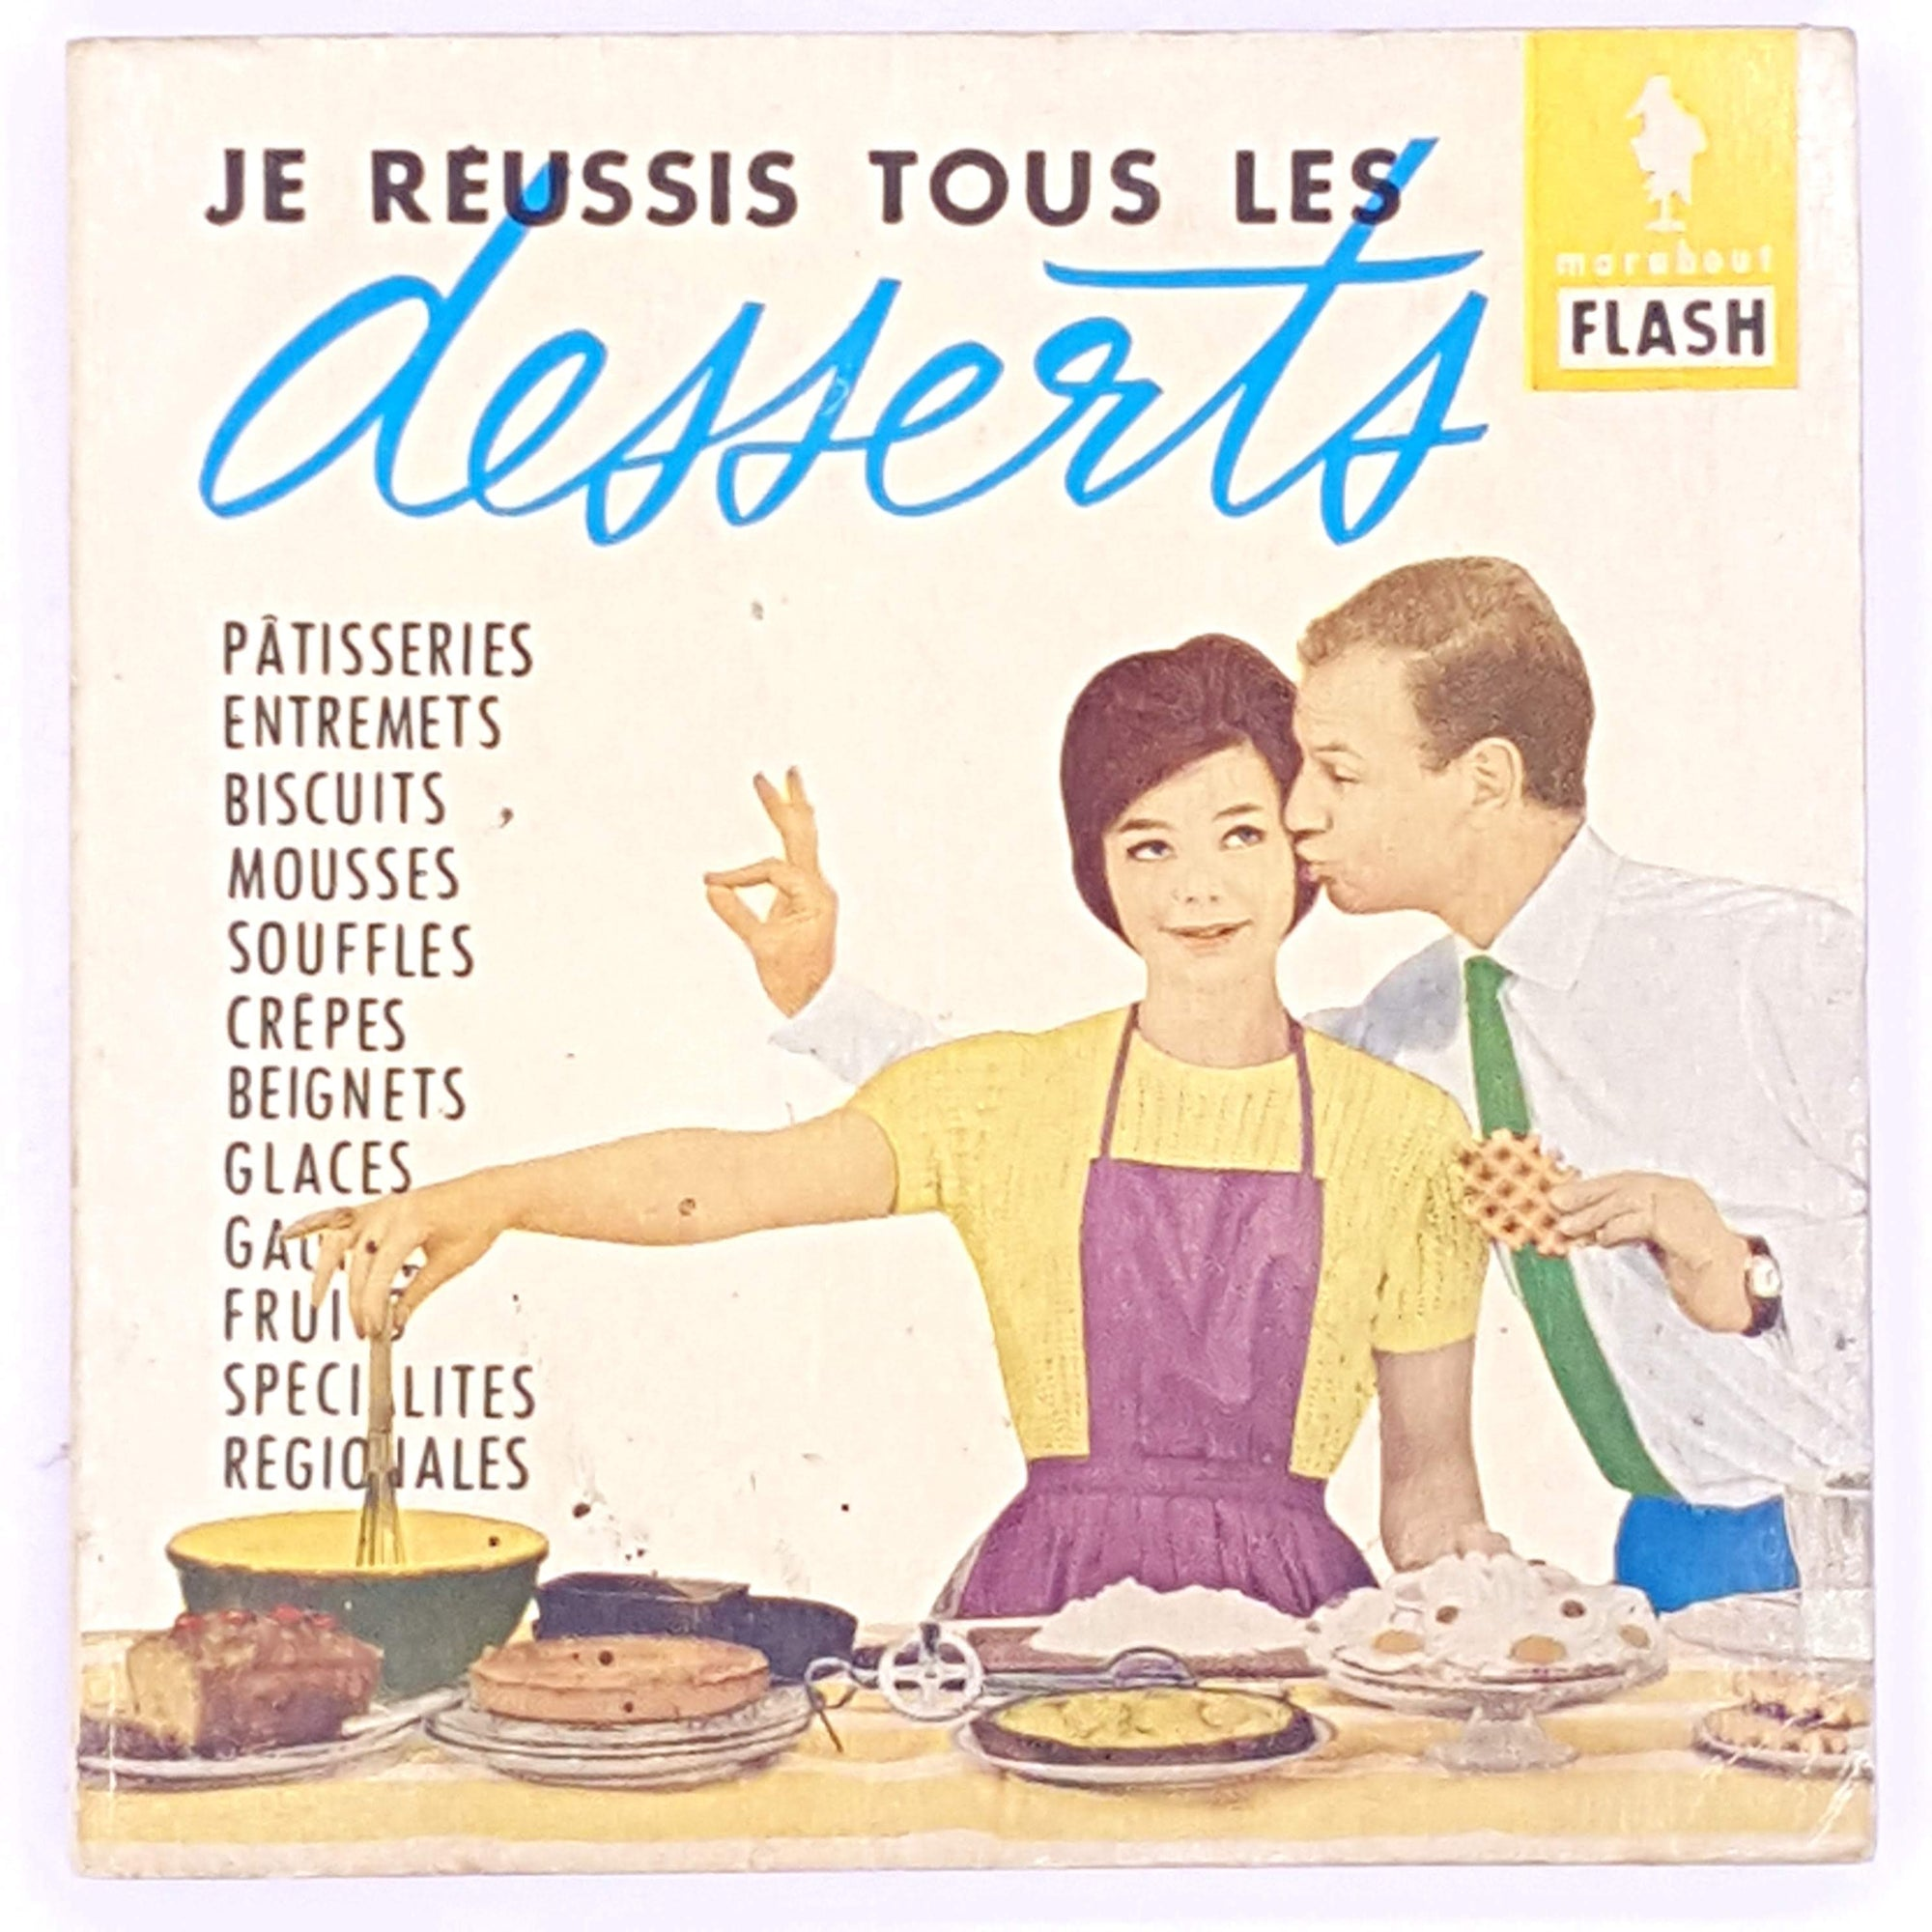 cookbooks-thrift-old-french-JE-REUSSIS-TOUS-LES-desserts-country-house-library-gifts-decorative-feeding-family-classic-for-foodies-food-patterned-christmas-cook-lunch-cooking-antique-books-tasty-delicious-baking-dinner-vintage-baker-breakfast-